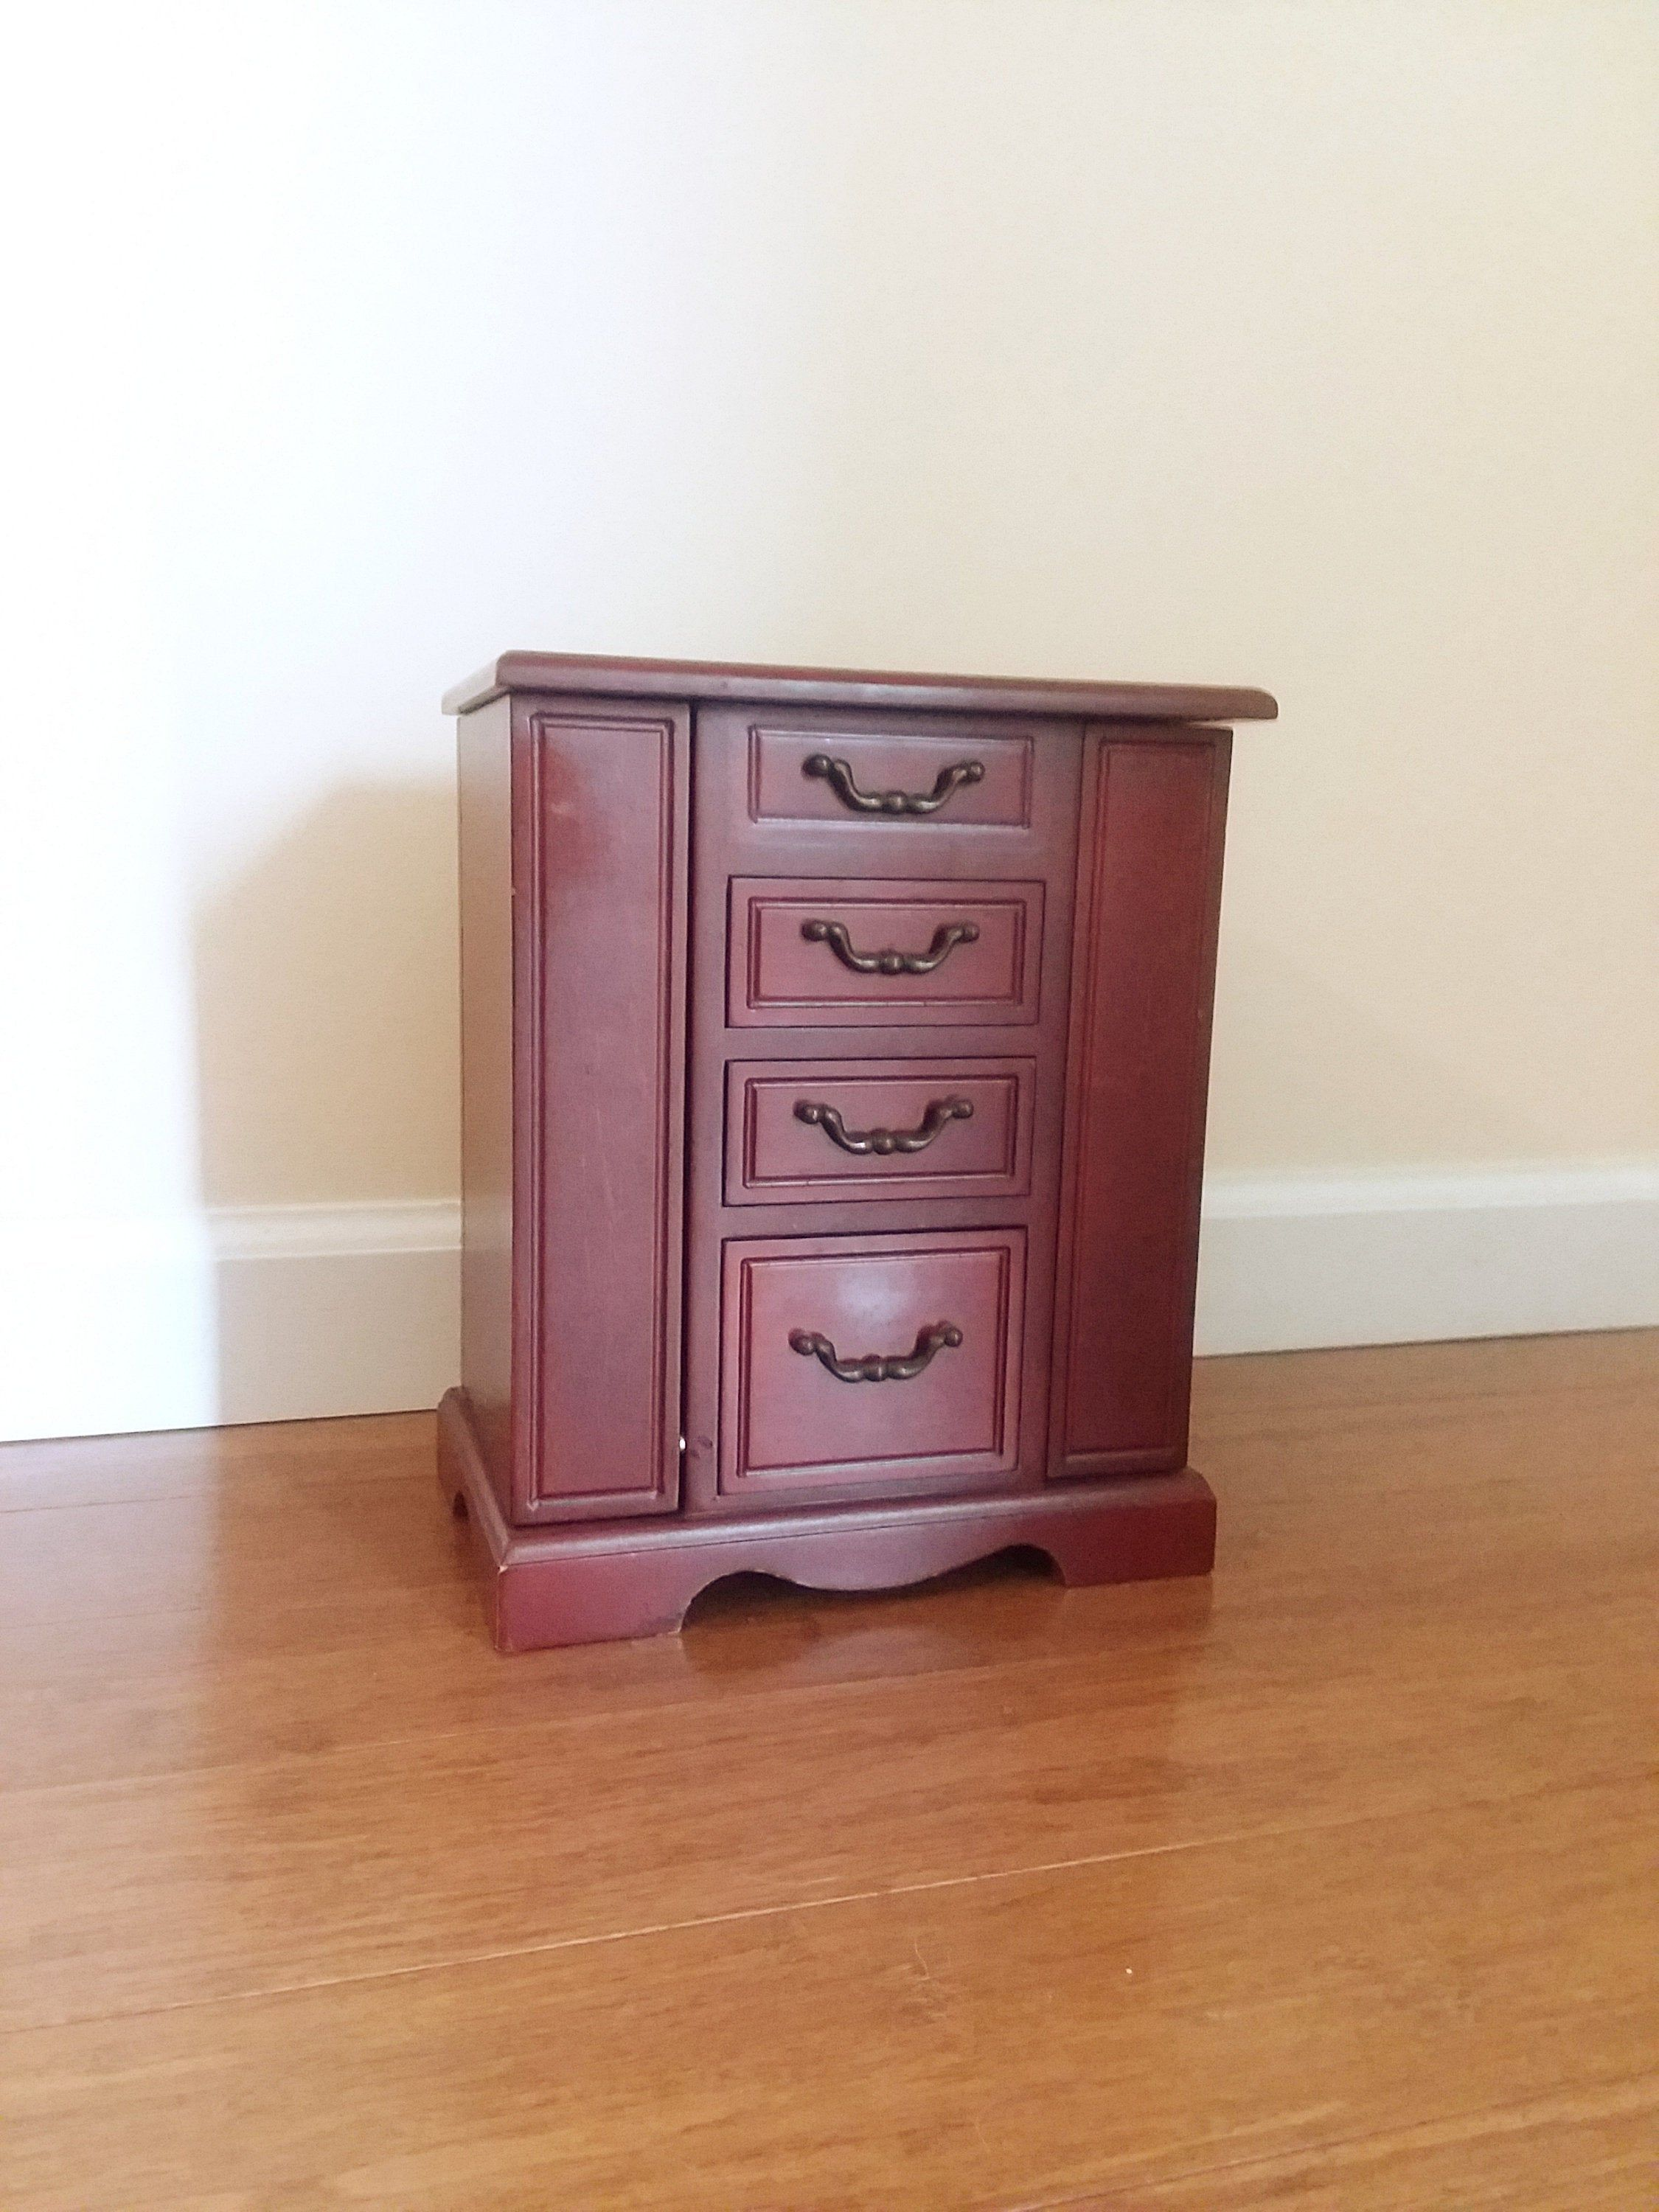 25+ Solid cherry wood jewelry armoire ideas in 2021